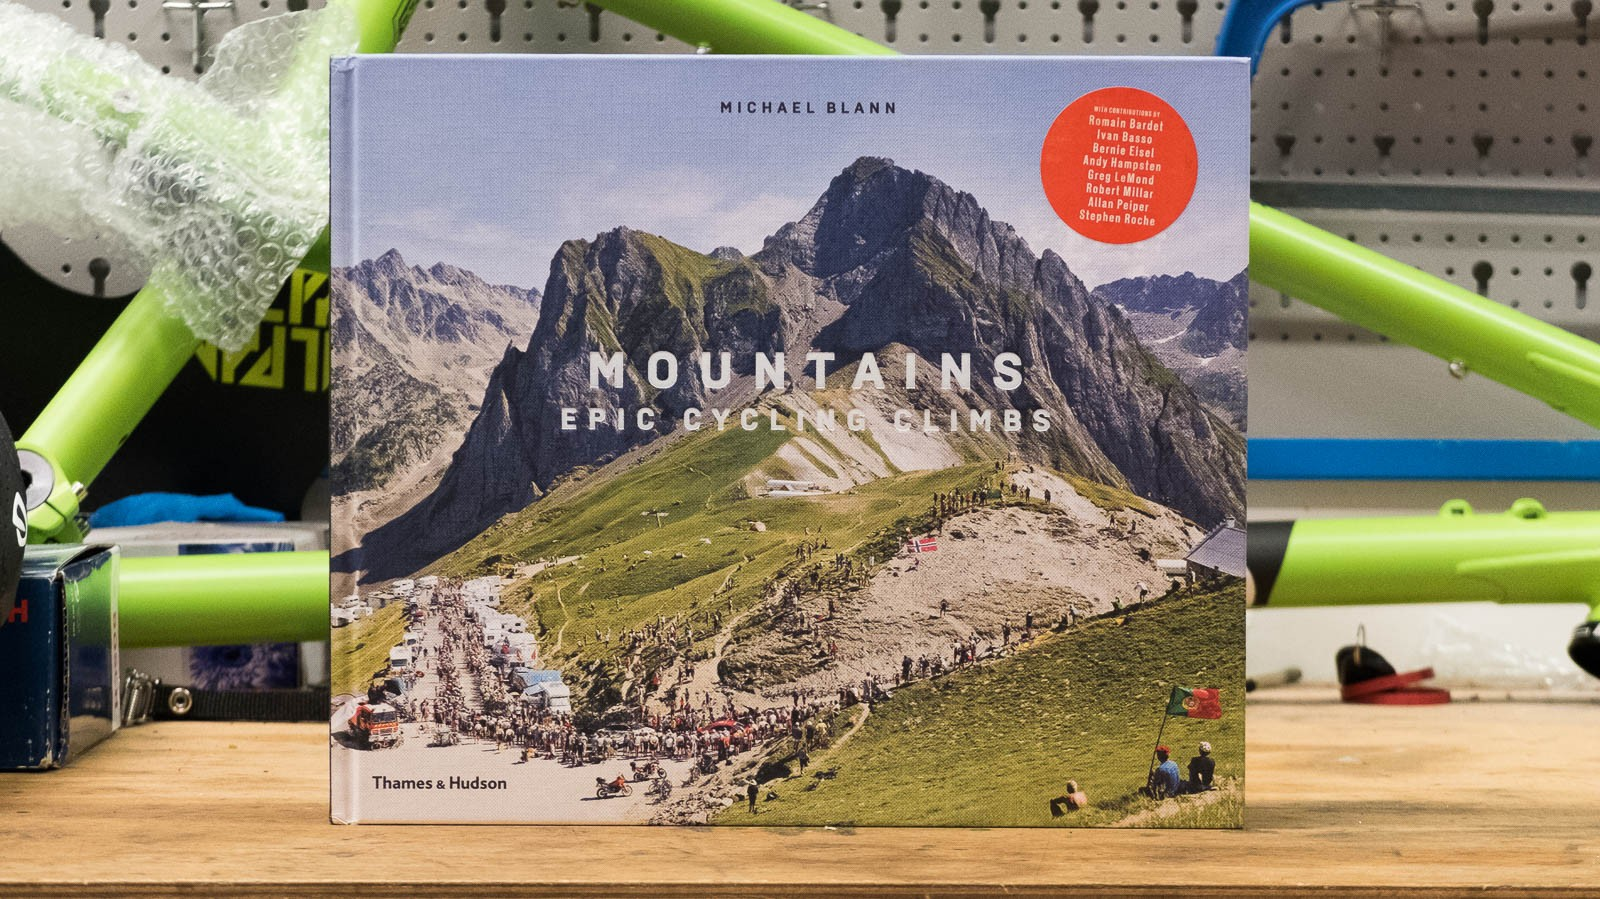 'Mountains: Epic Cycling Climbs' by Michael Blann is a howitzer of a coffee table book